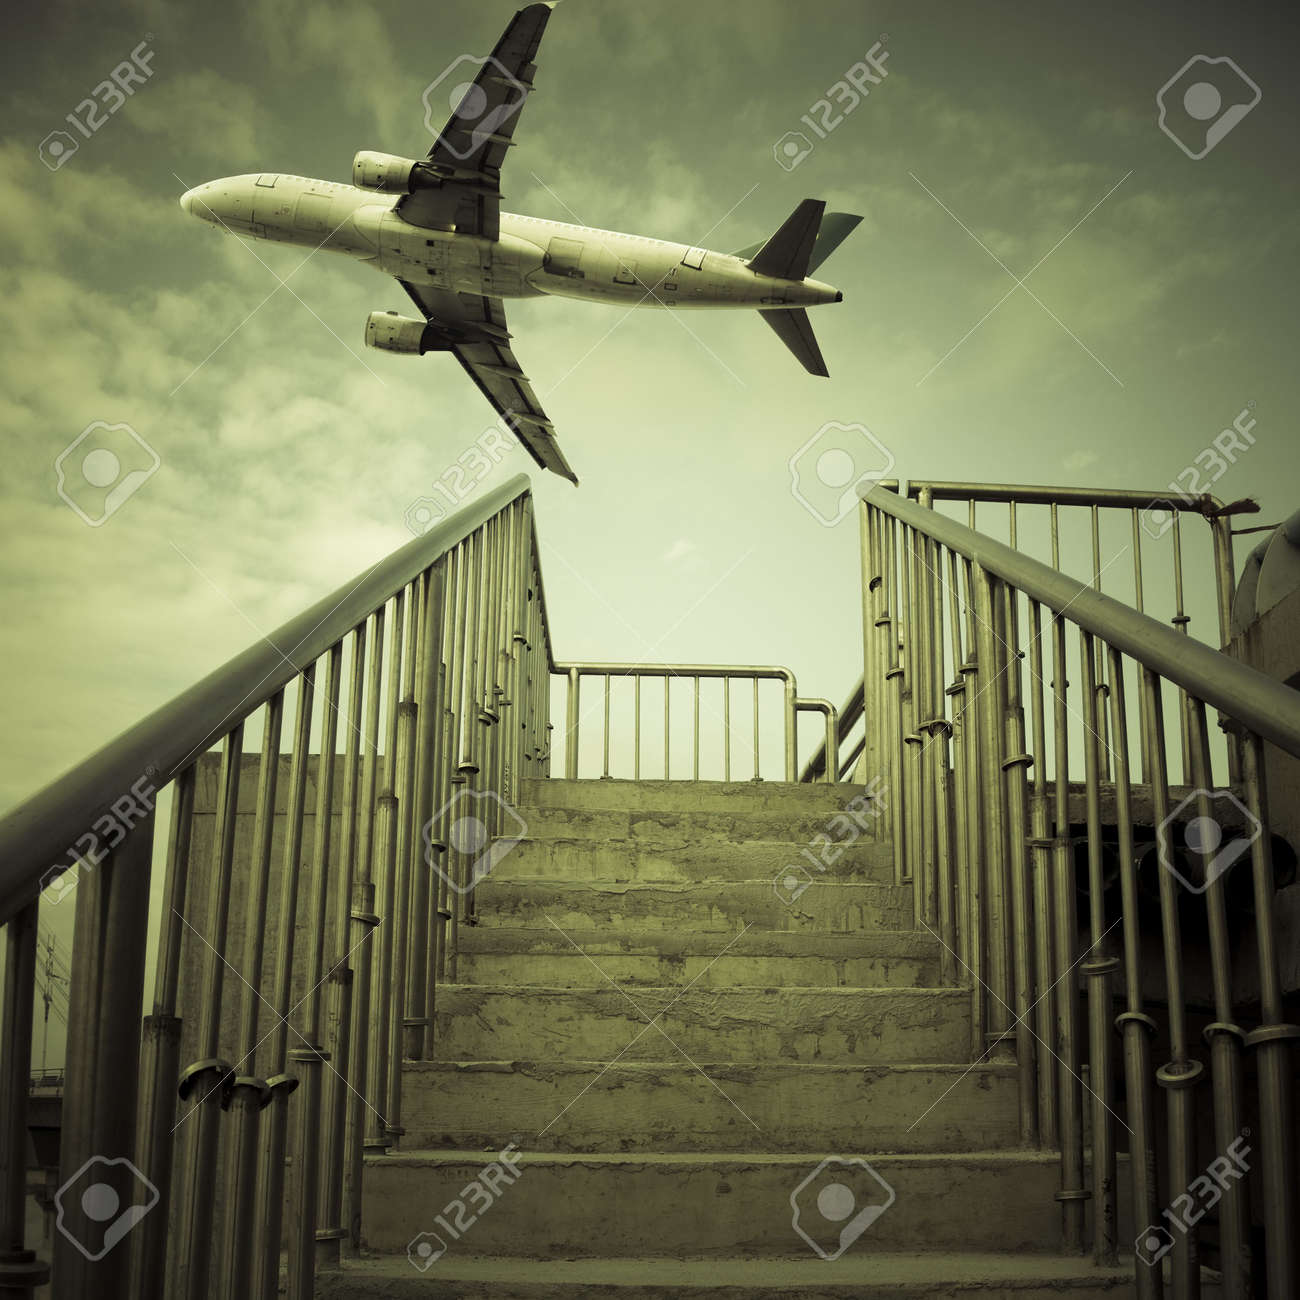 stair to the sky. background of a bridge outdoor. Stock Photo - 6087922